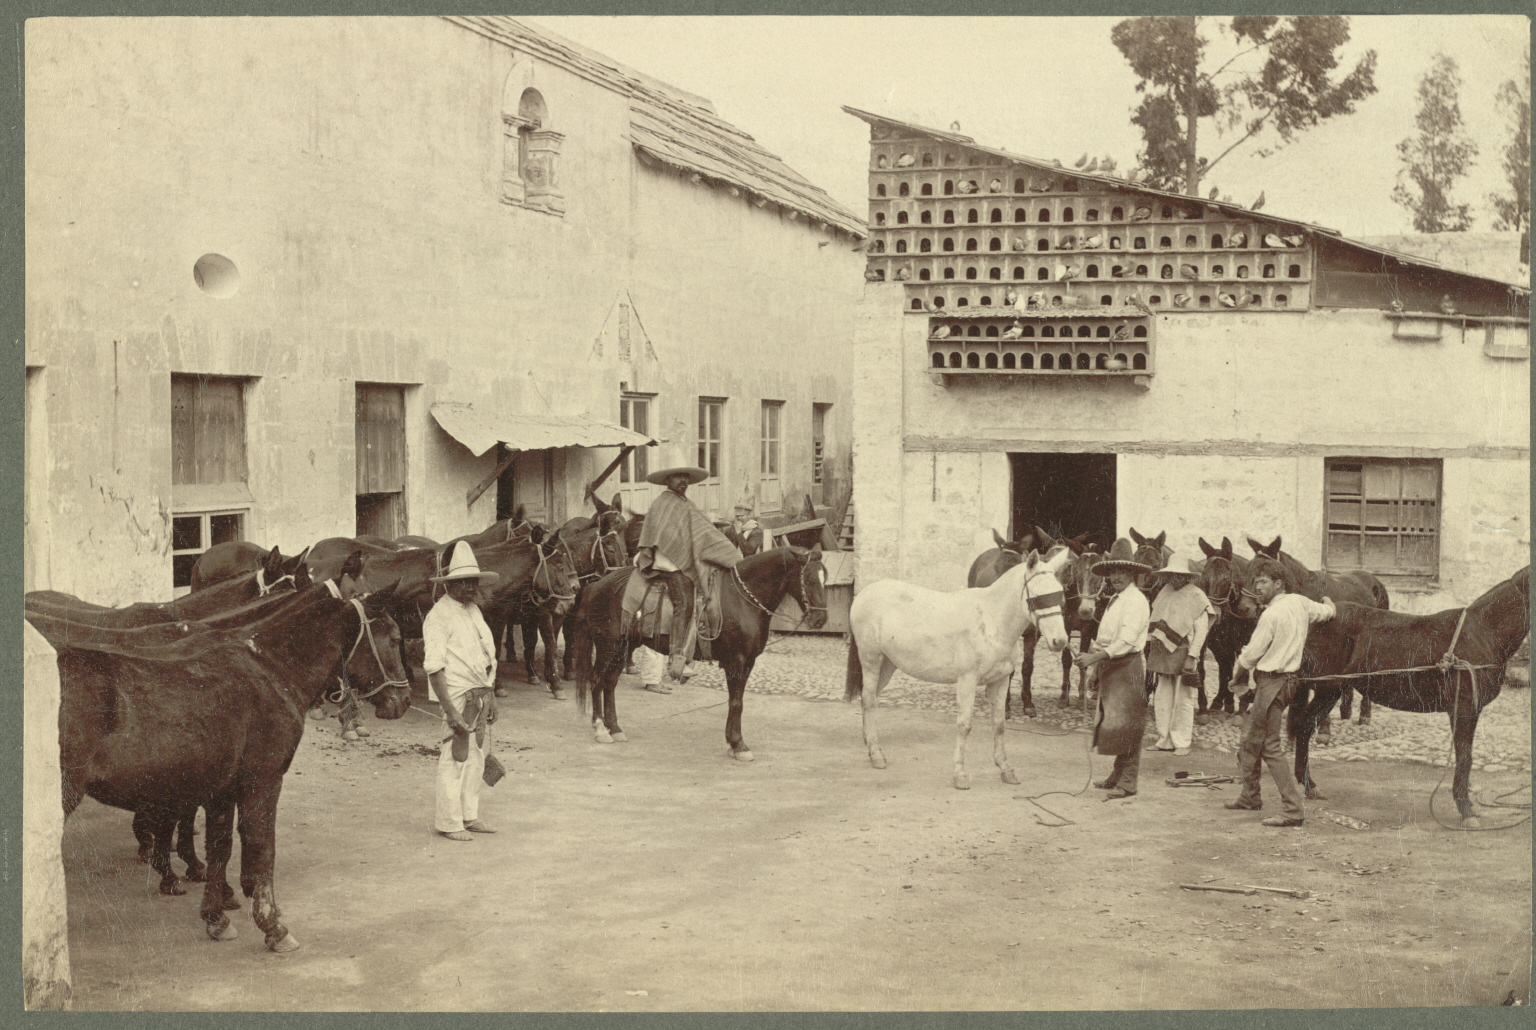 File:Shoeing the Mules (Mexican Village Scene).jpg - Wikimedia Commonsmexico village